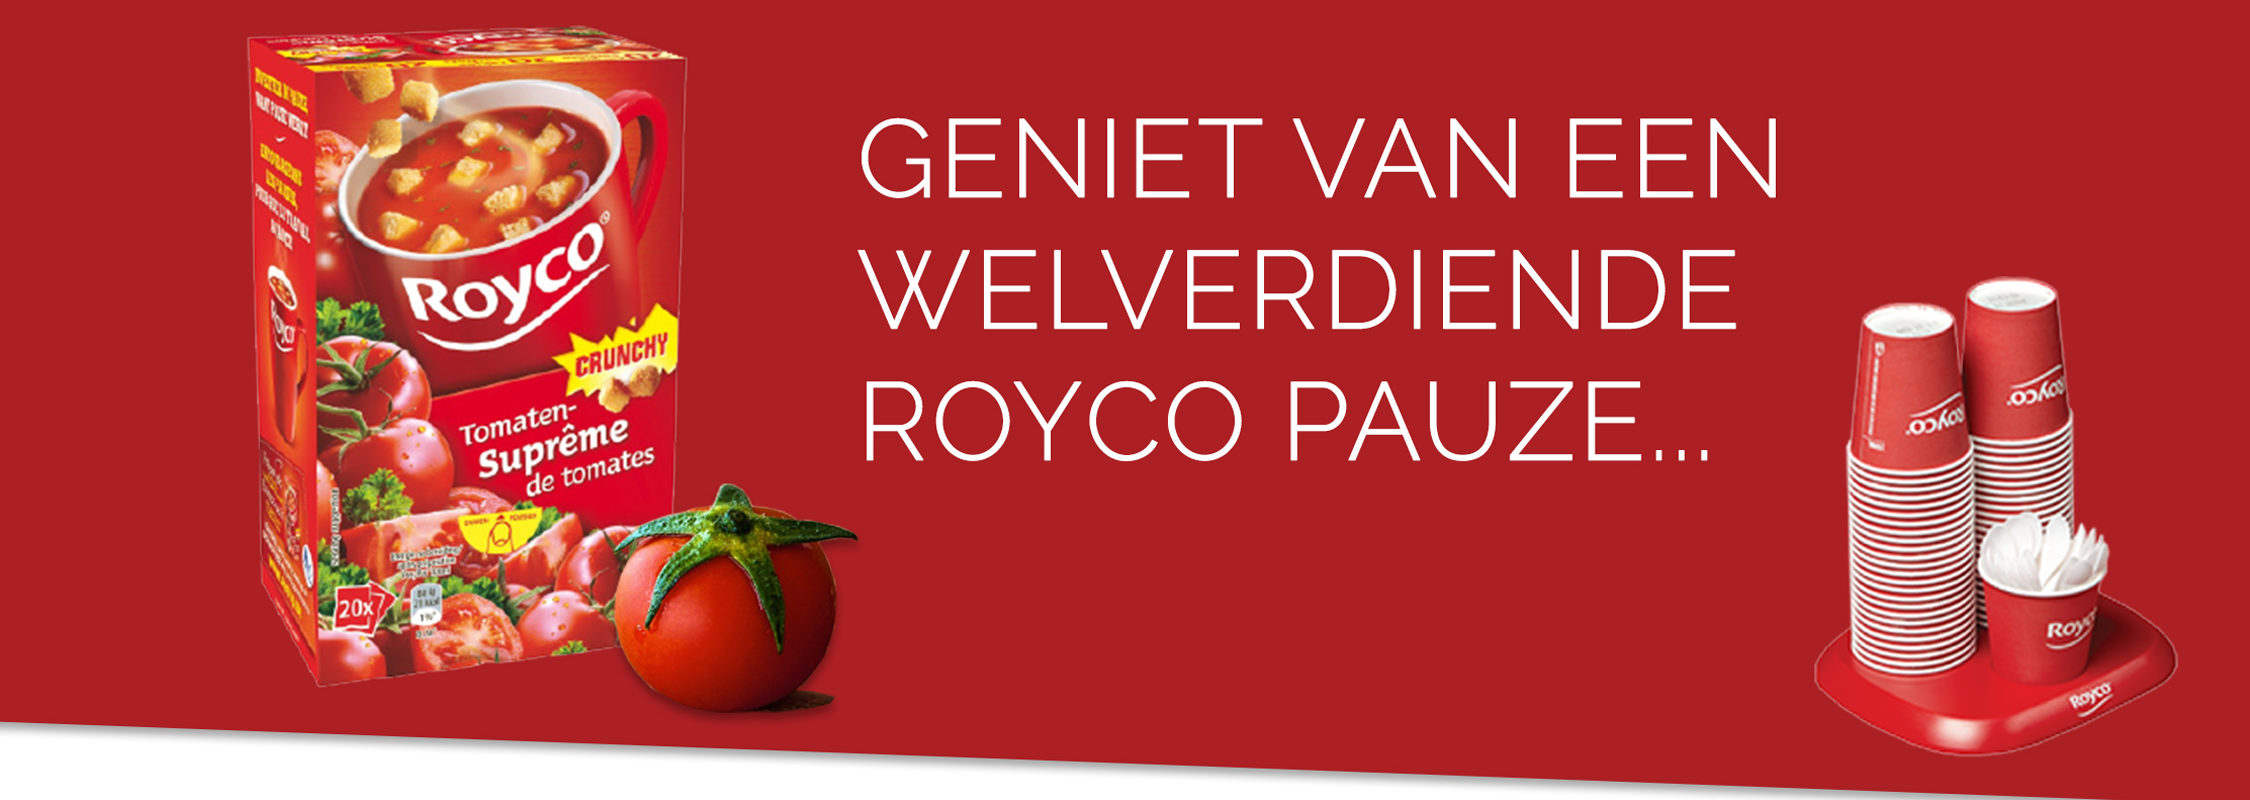 Royco-Banner-Capriole-Website